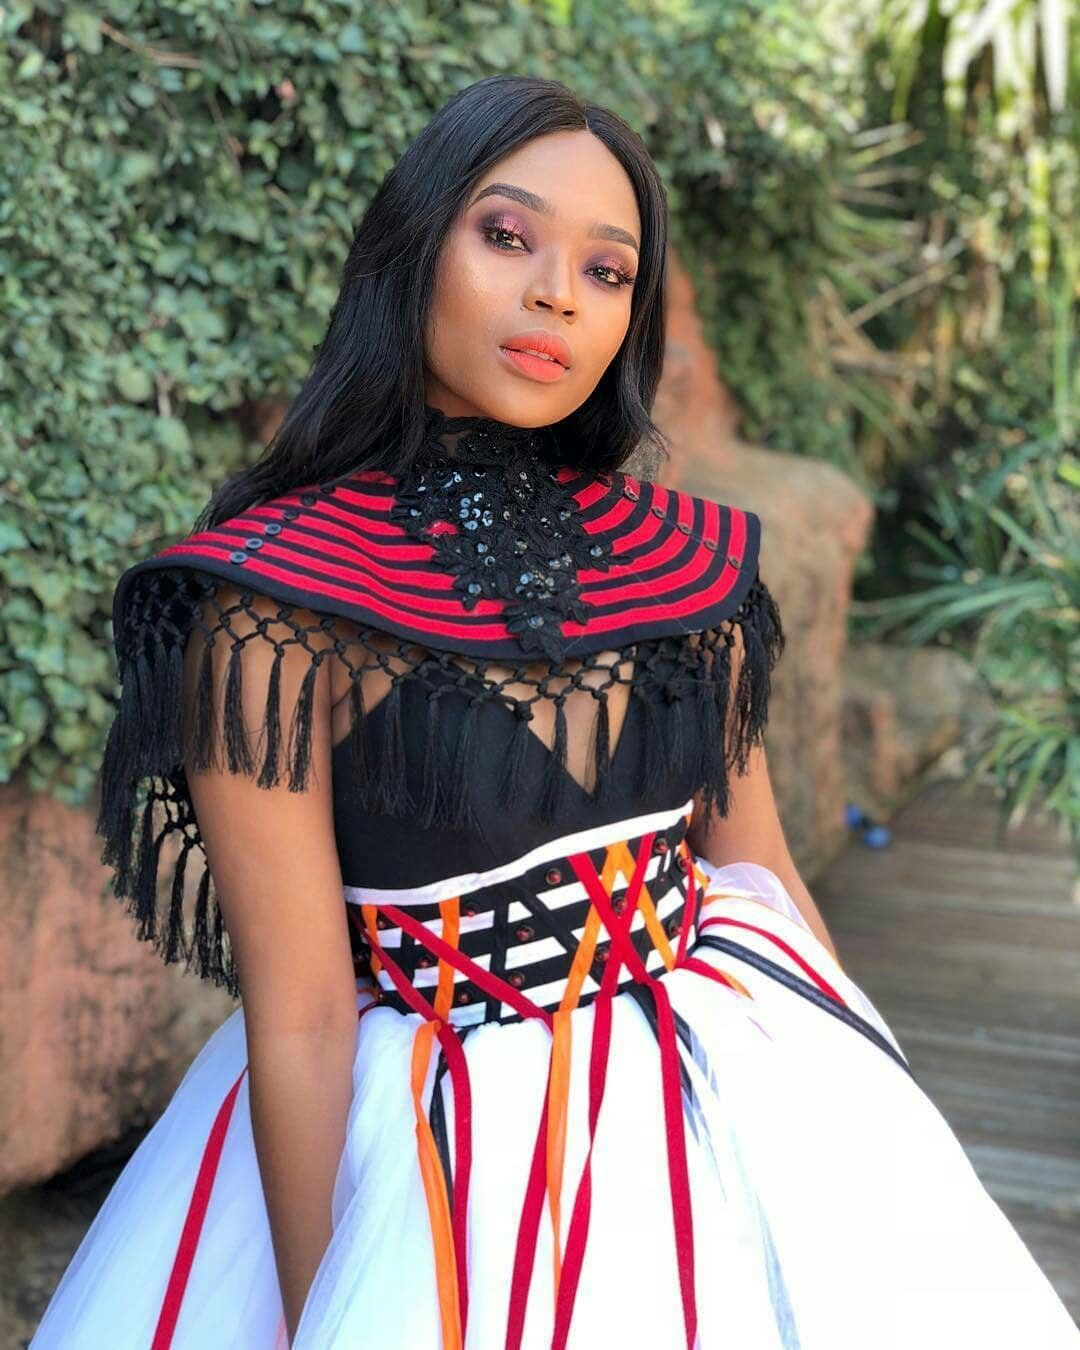 Pin By Forever On South African Beauties South African Traditional Dresses African Fashion Traditional South African Dresses